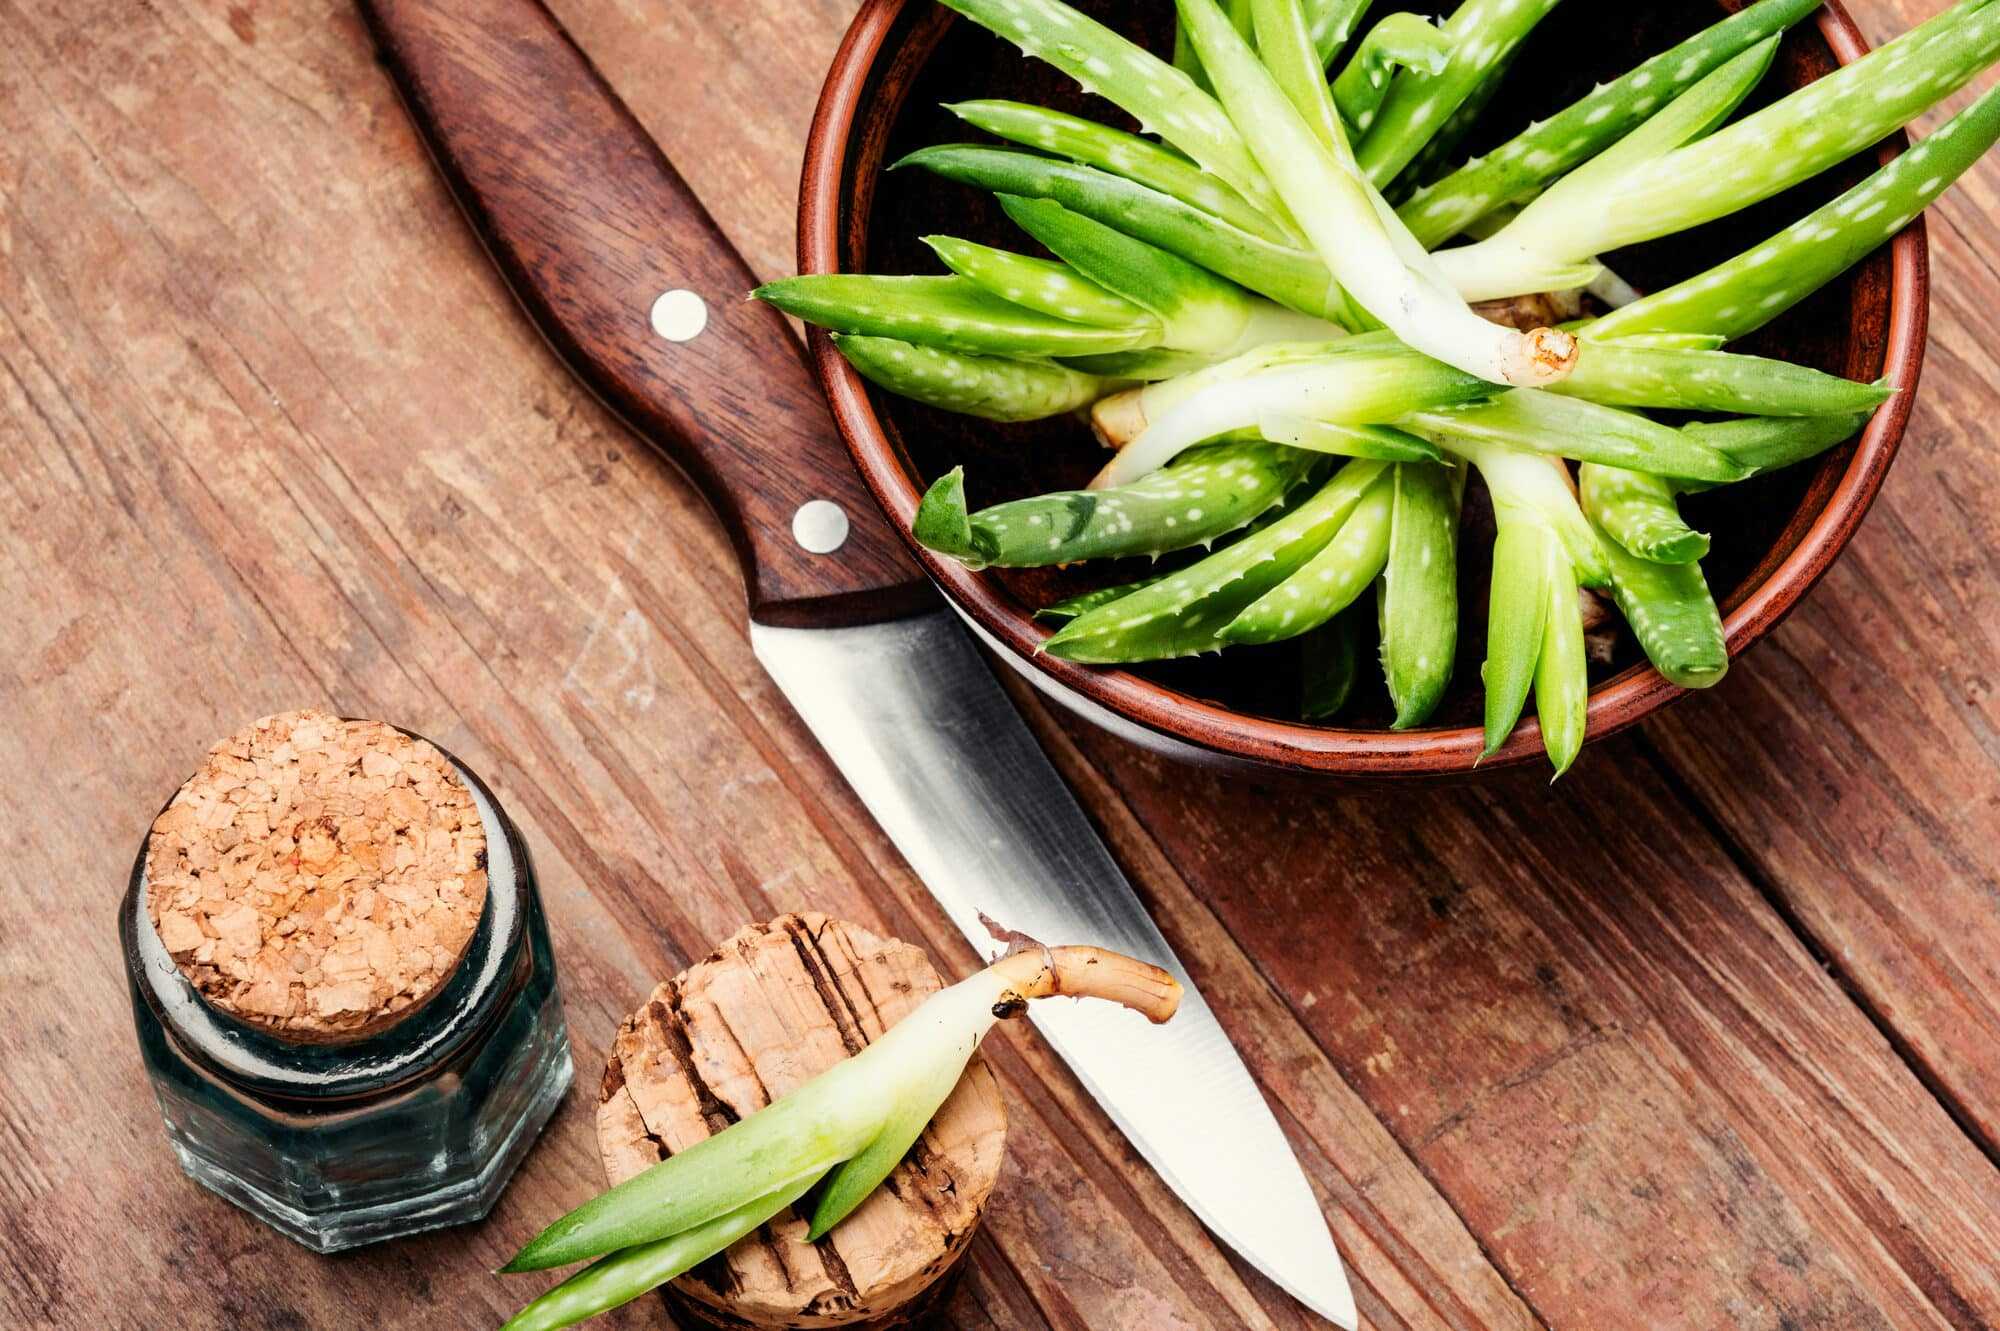 Cooking With Aloe Vera: The Dos And Don'ts